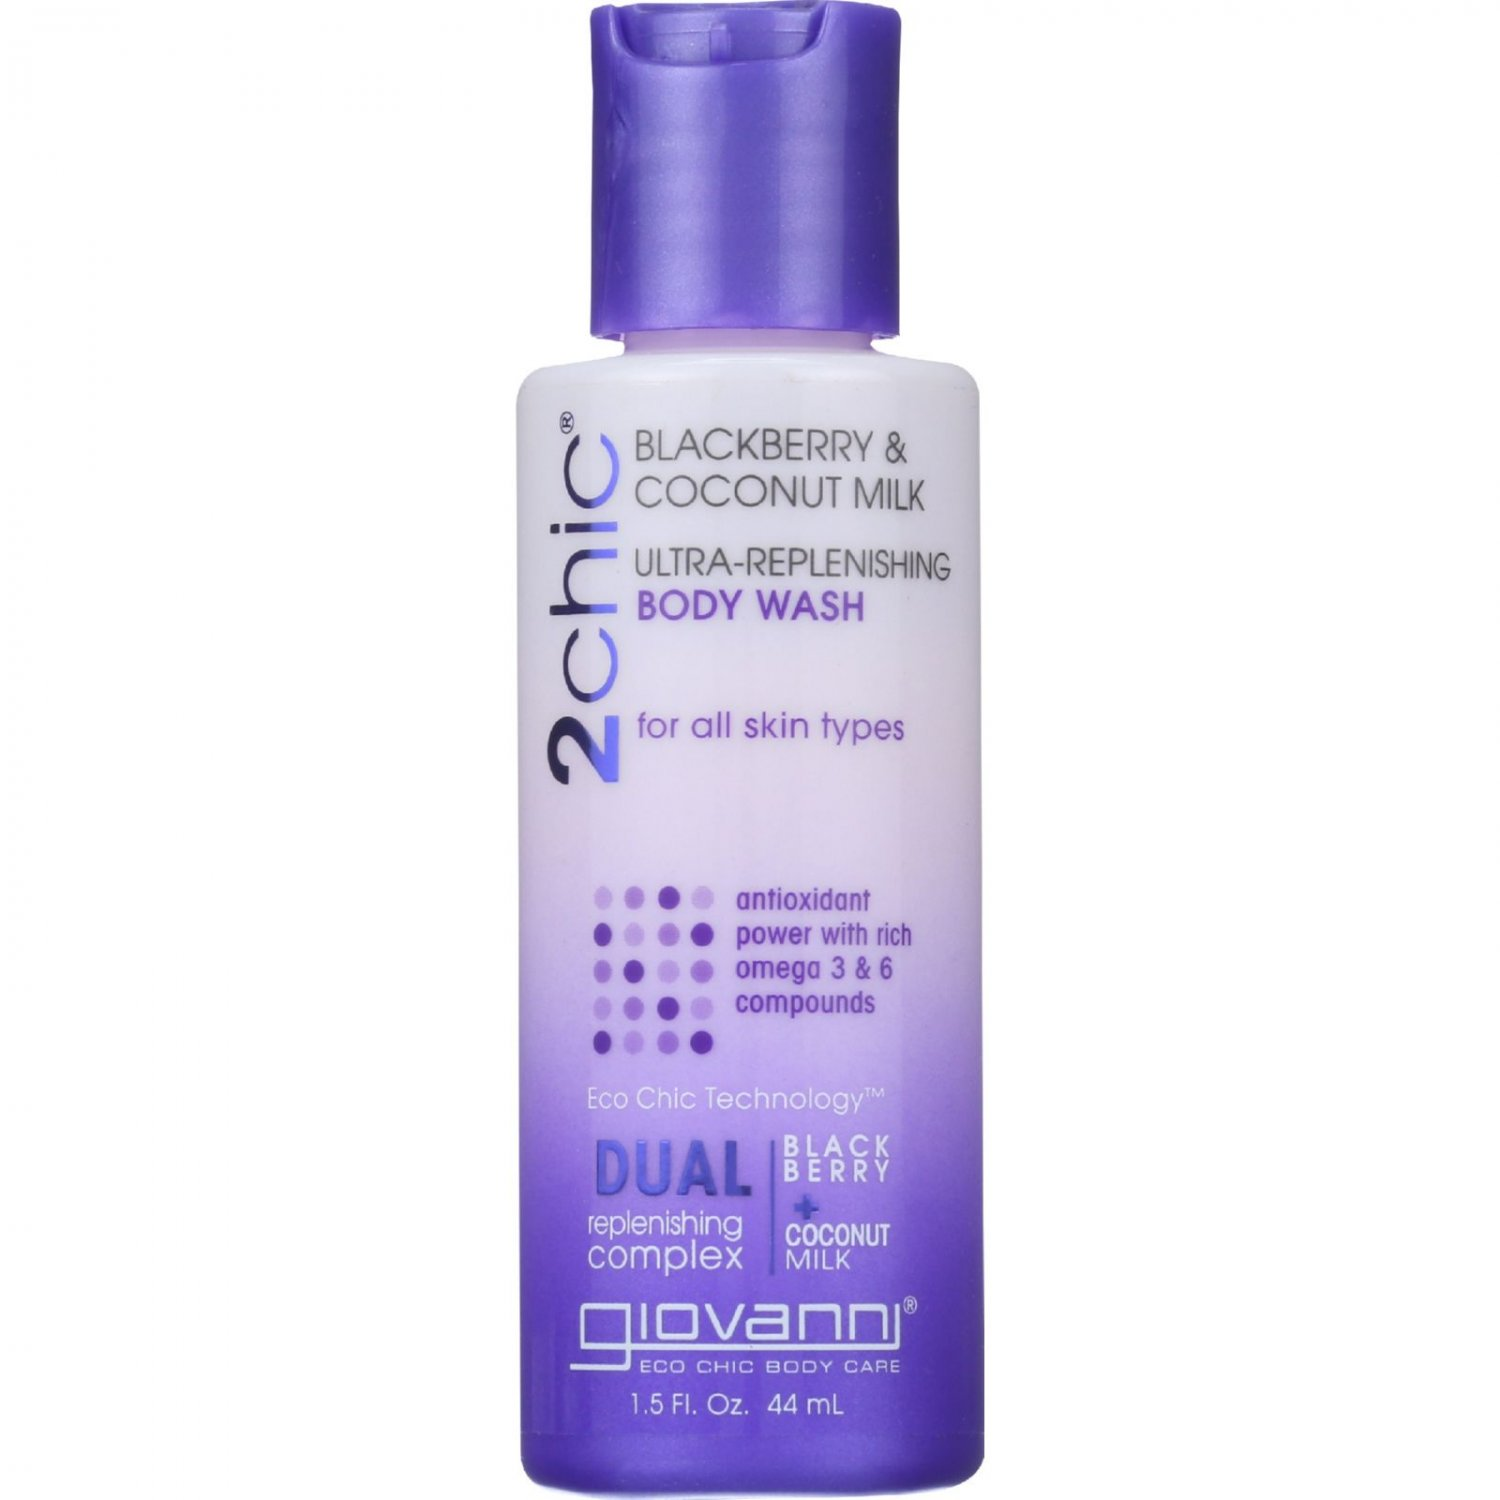 Giovanni Hair Care Products Bodywash - 2Chic - Ultra-Replenishing - Blackberry and Coconut Milk - 1.